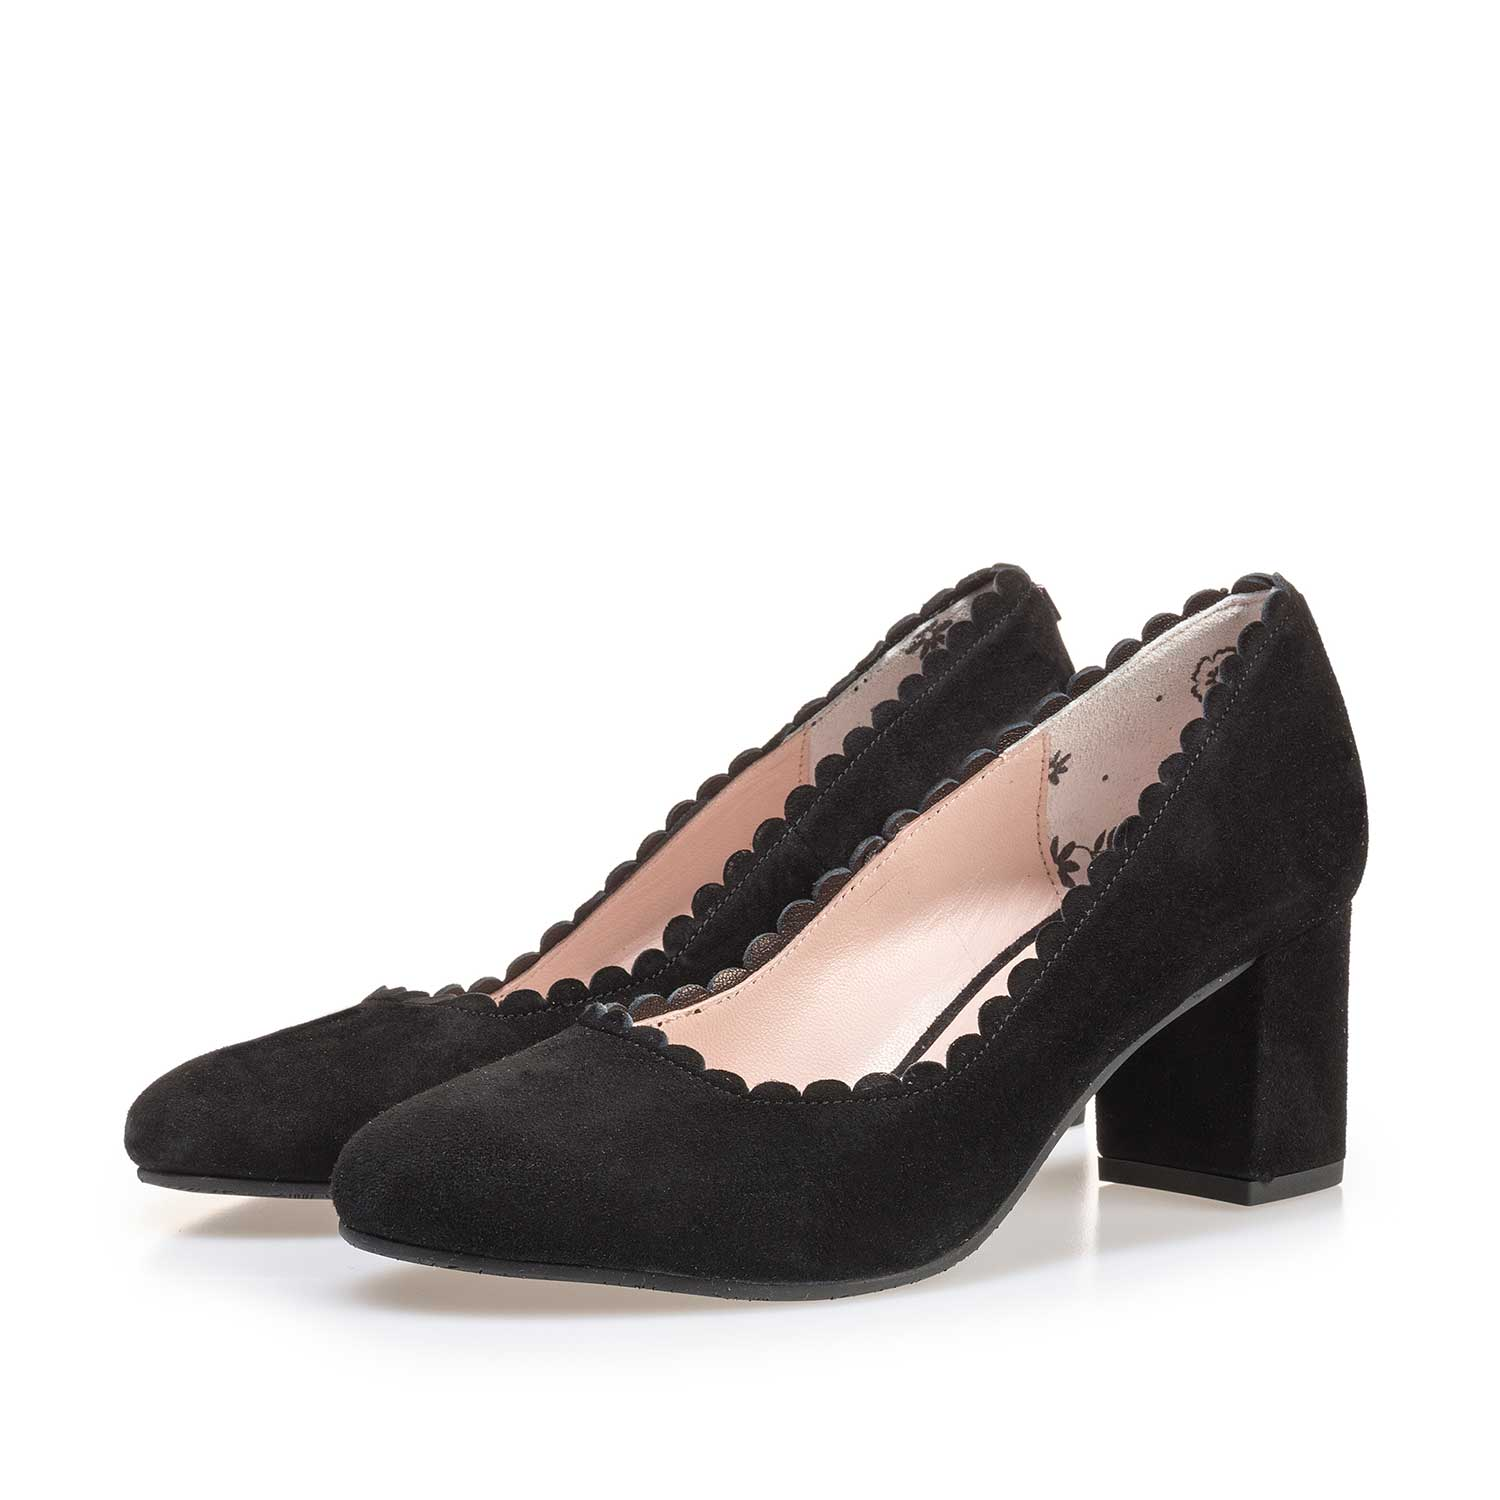 85226/00 - Black suede leather pumps